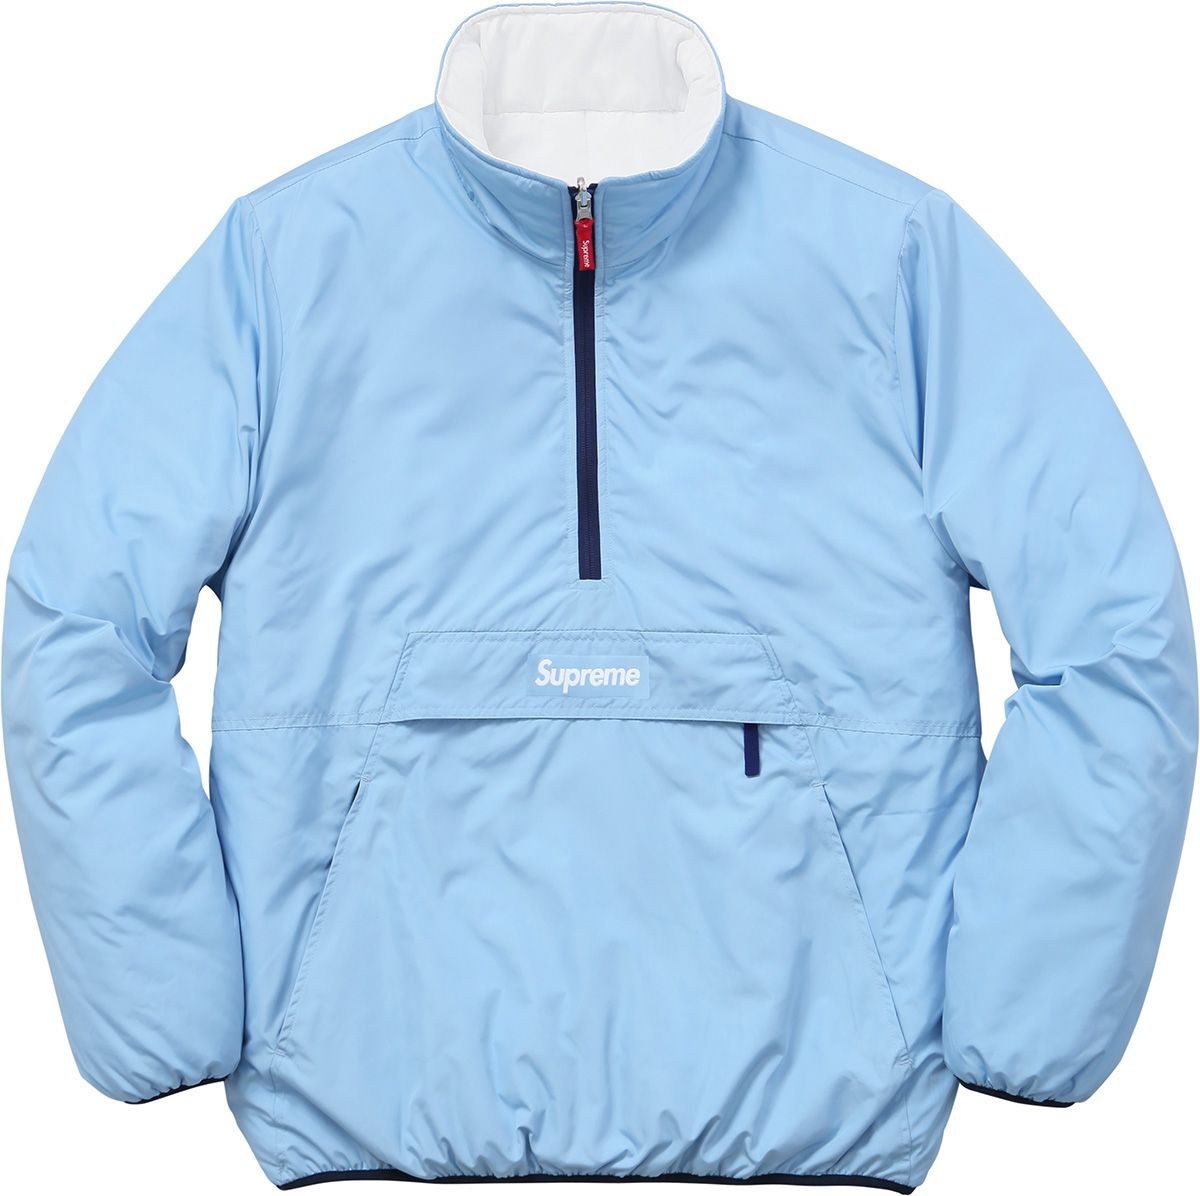 Supreme Reversible Pullover Puffer Jackets Pullover Jacket Puffy Jacket [ 1196 x 1200 Pixel ]